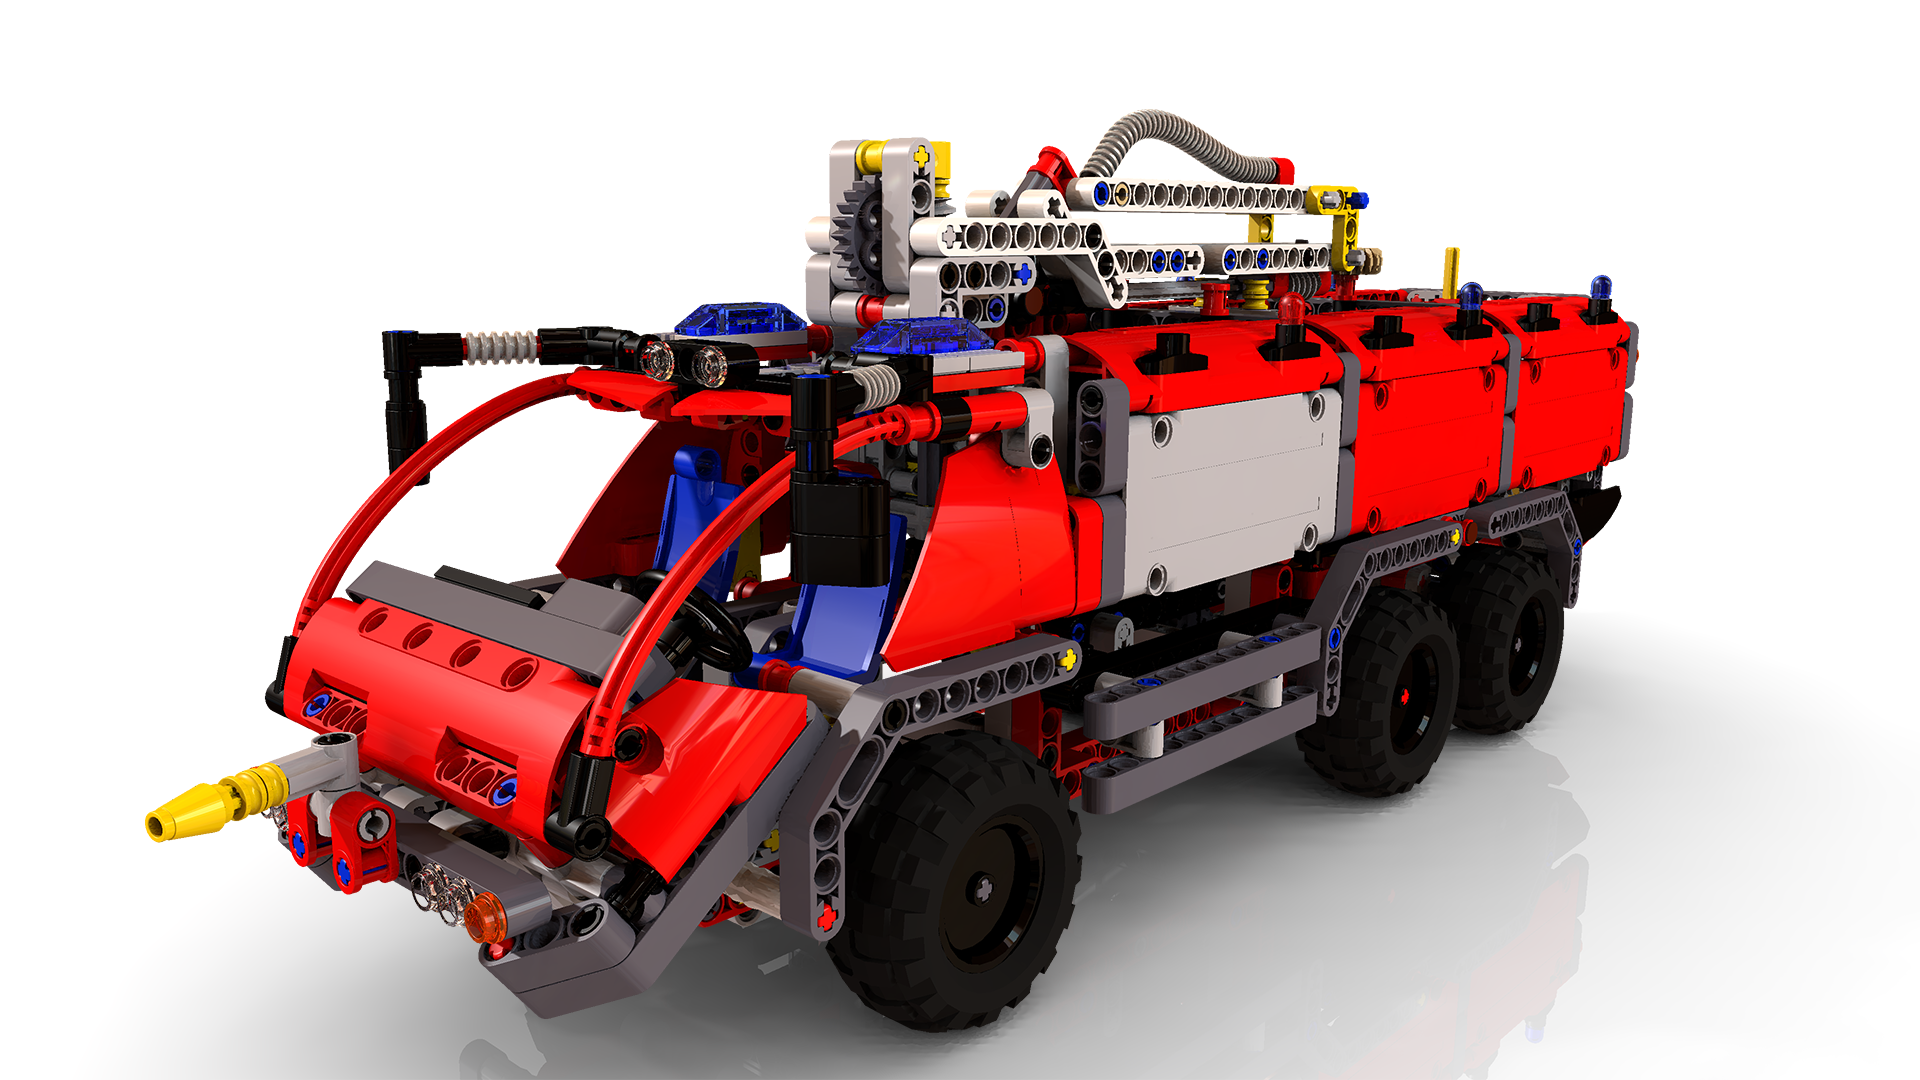 [Image: 42068_-_airport_rescue_vehicle_1.png]